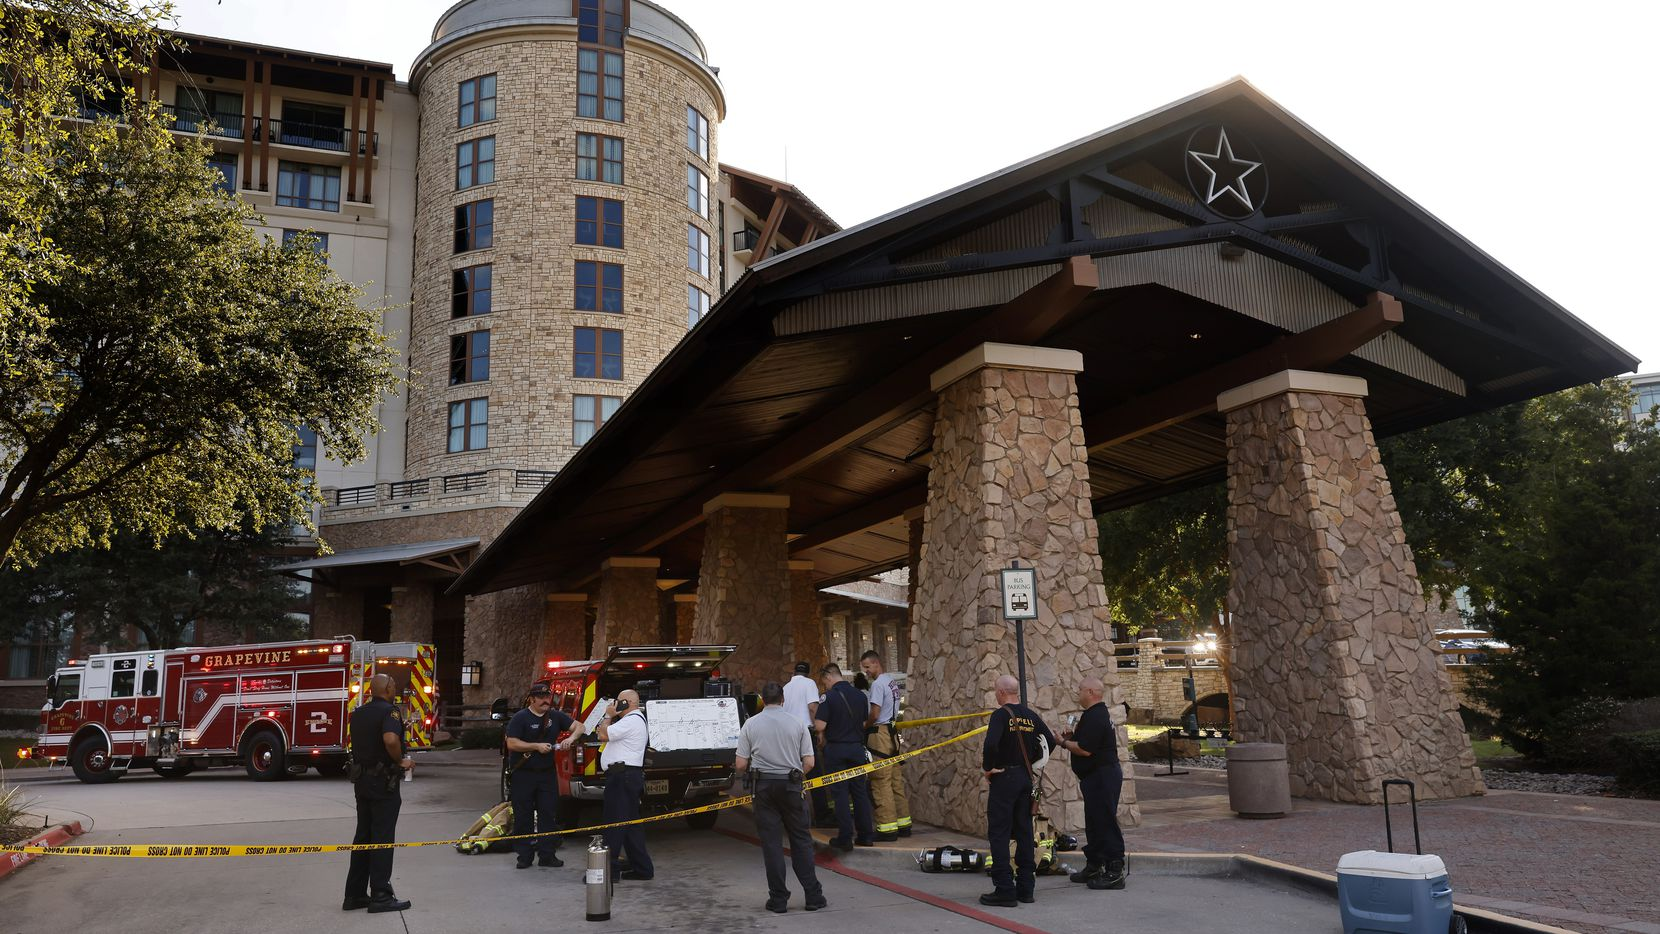 Fire officials set up a command post outside the Gaylord Texan Resort & Convention Center following a smoky fire at the Grapevine resort on Aug. 25.